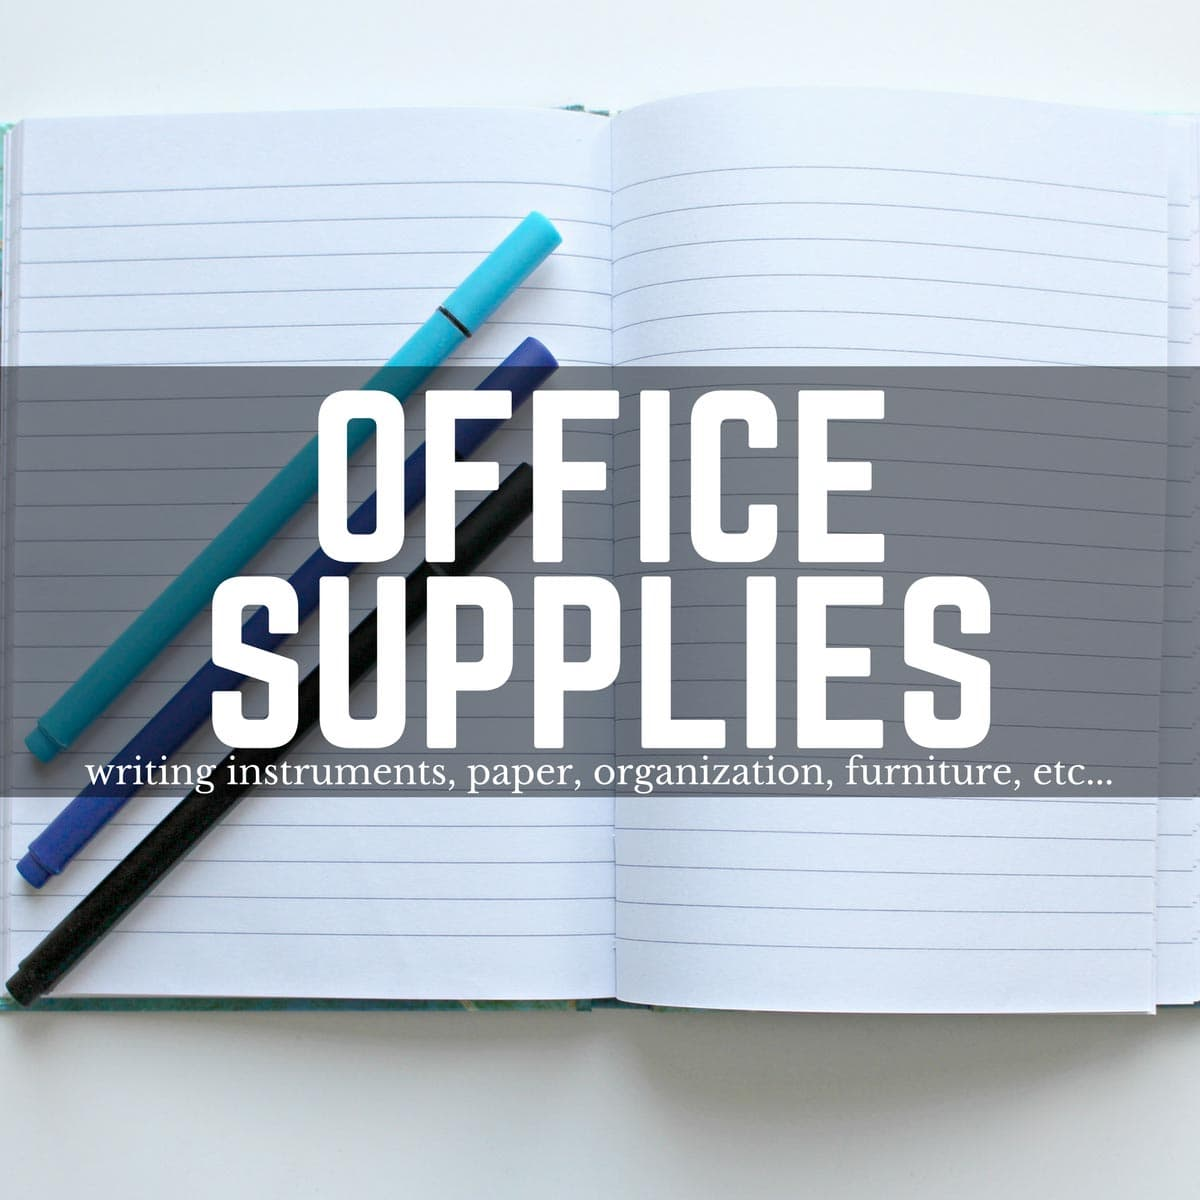 american made office supplies, made in usa office supplies, american made pens, made in usa pens, american made paper products, made in usa paper products, american made office furniture, made in usa office furniture, american made notebook, made in usa notebook, american made pencils, made in usa pencils, american made eraser, made in usa eraser, american made scissors, made in usa scissors, american made tape, made in usa tape, american made stapler, made in usa stapler, american made post it notes, made in usa post it notes, american made crayons, made in usa crayons, american made calendars, made in usa calendars, made in usa office, american made office, made in usa products list, made in america products list, american made products list